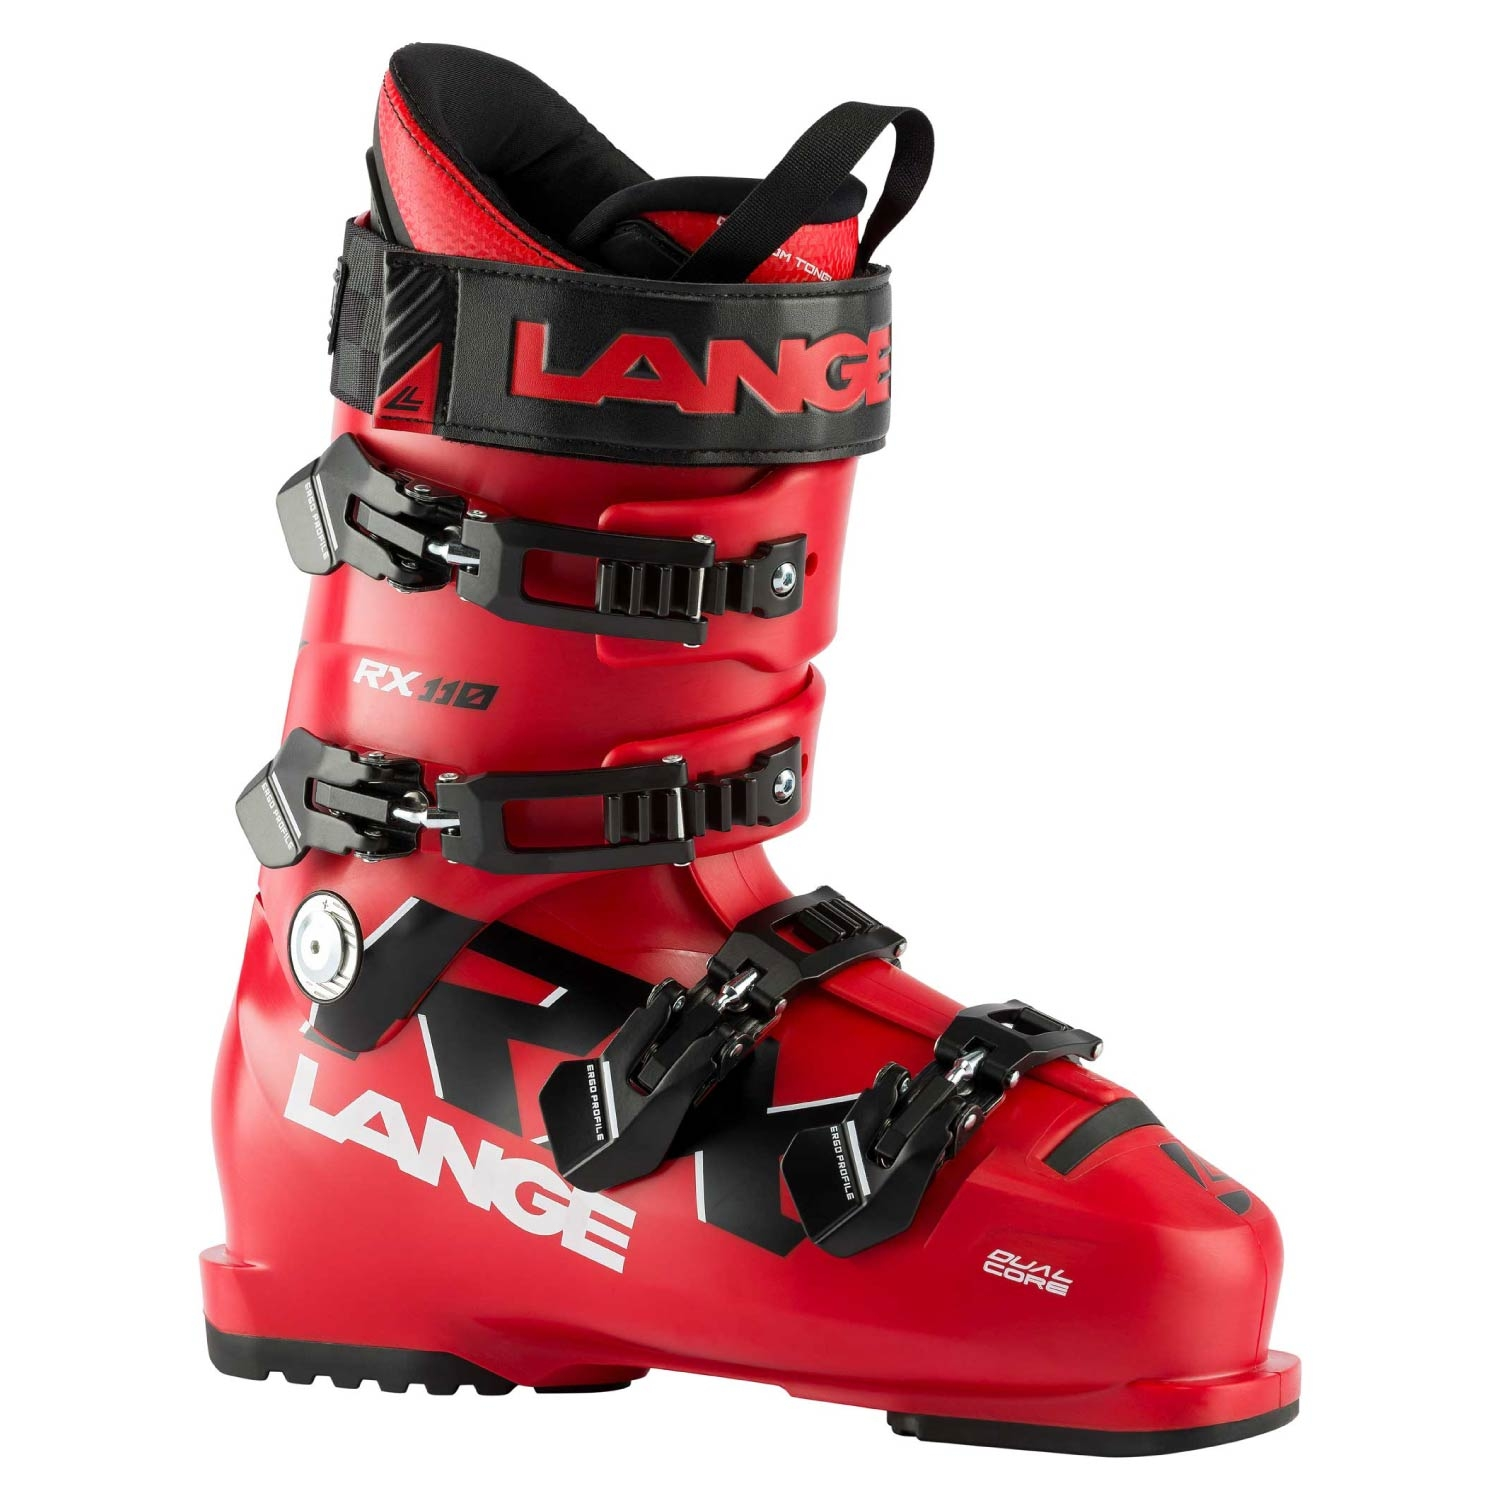 Lange RX 110 Ski Boots Red/Black 2021